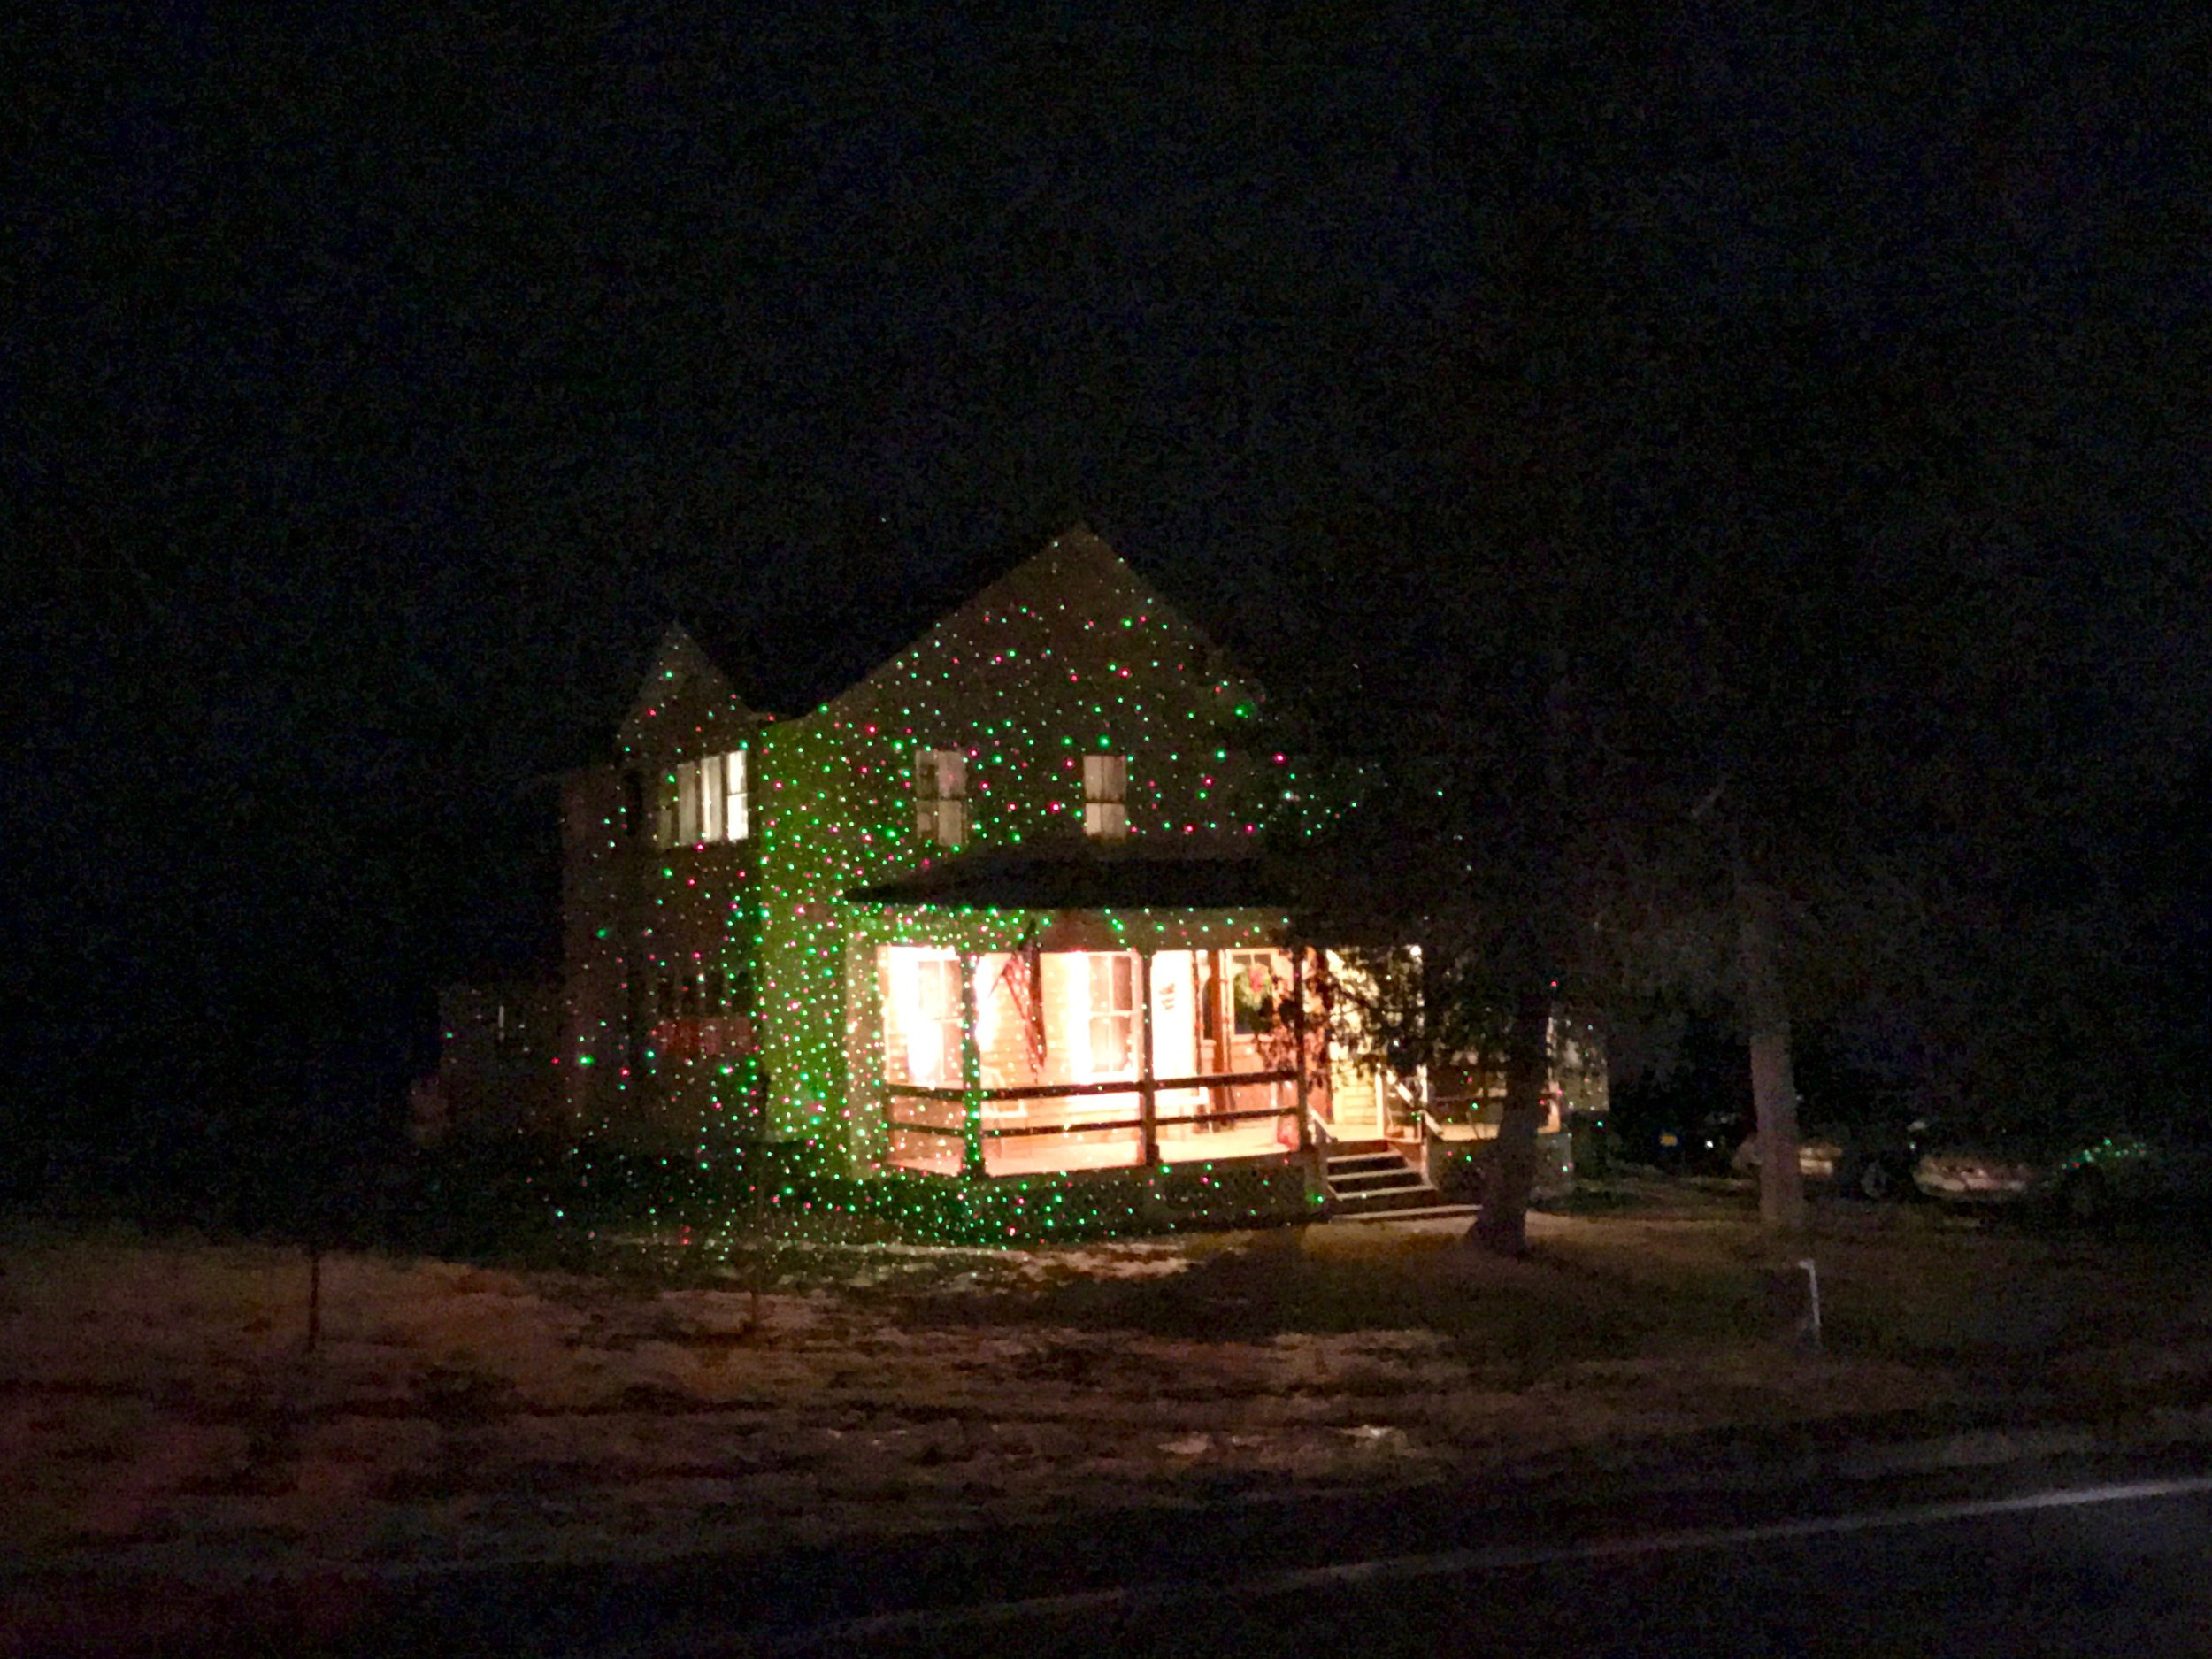 Another house with green and red projections on Route 9G